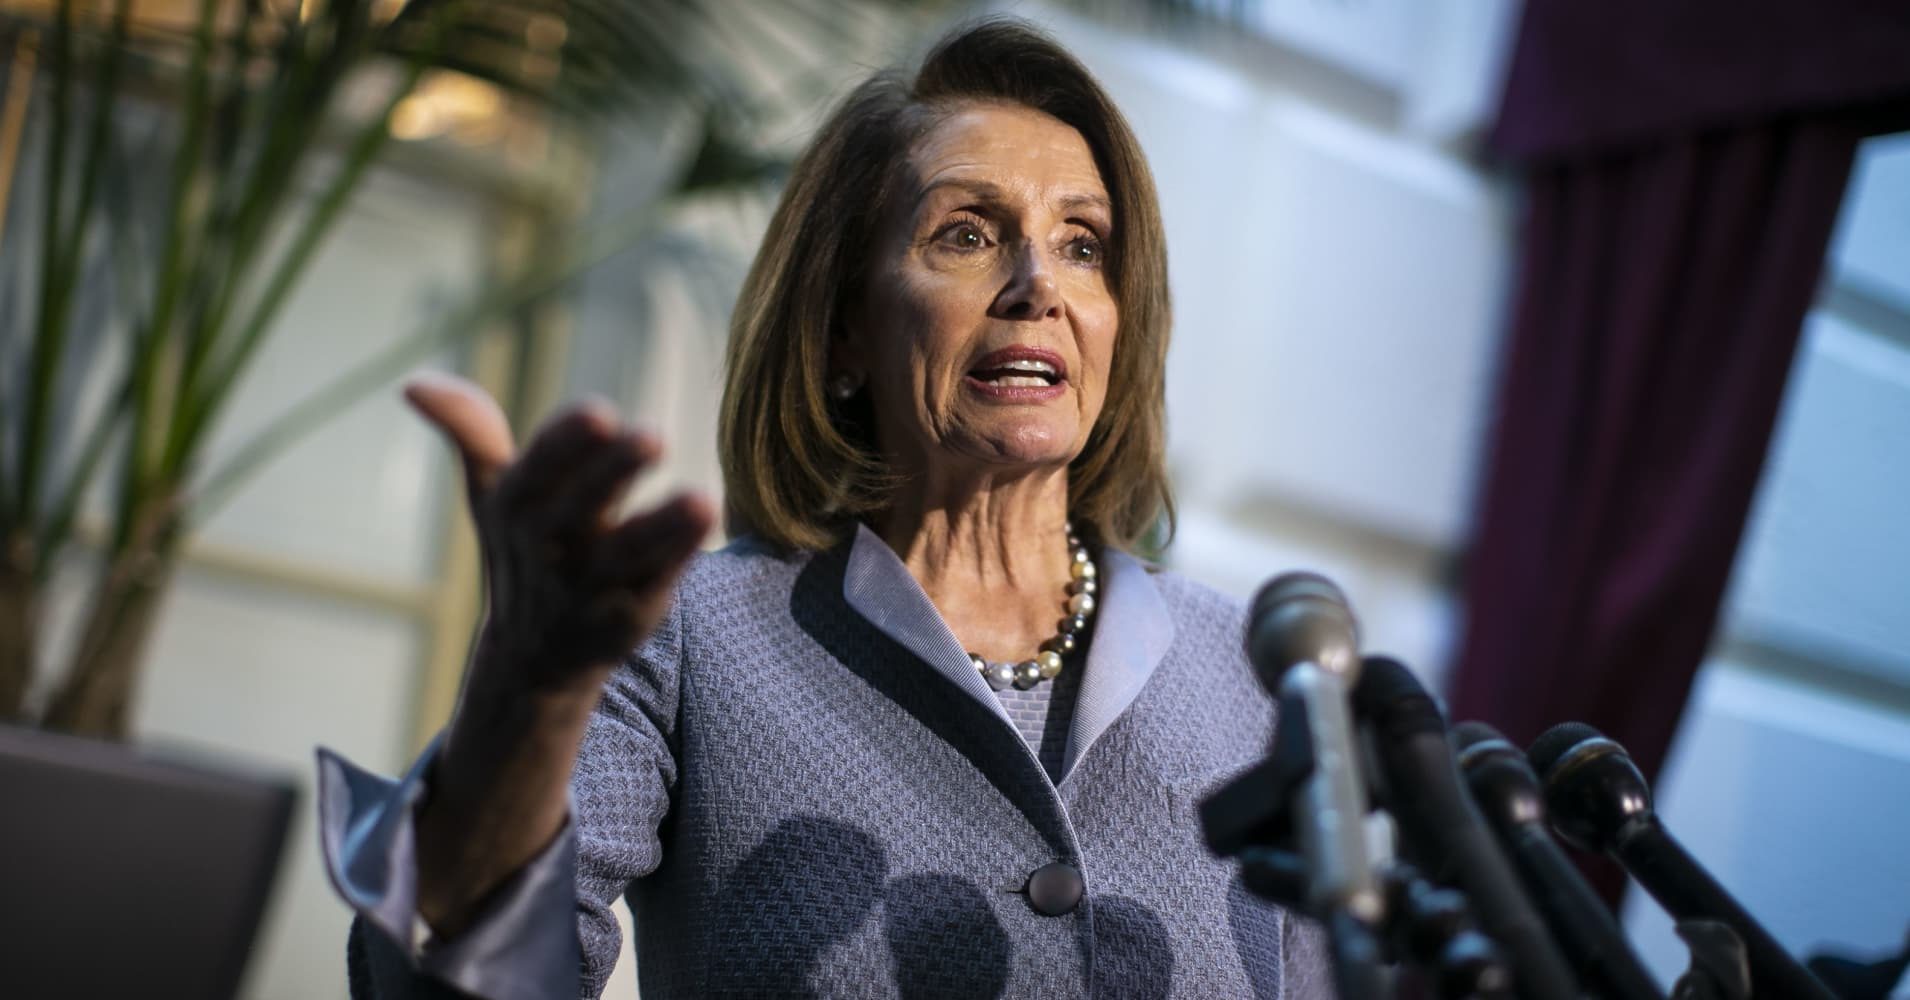 Pelosi: Trump's tweets have 'cheapened the presidency'